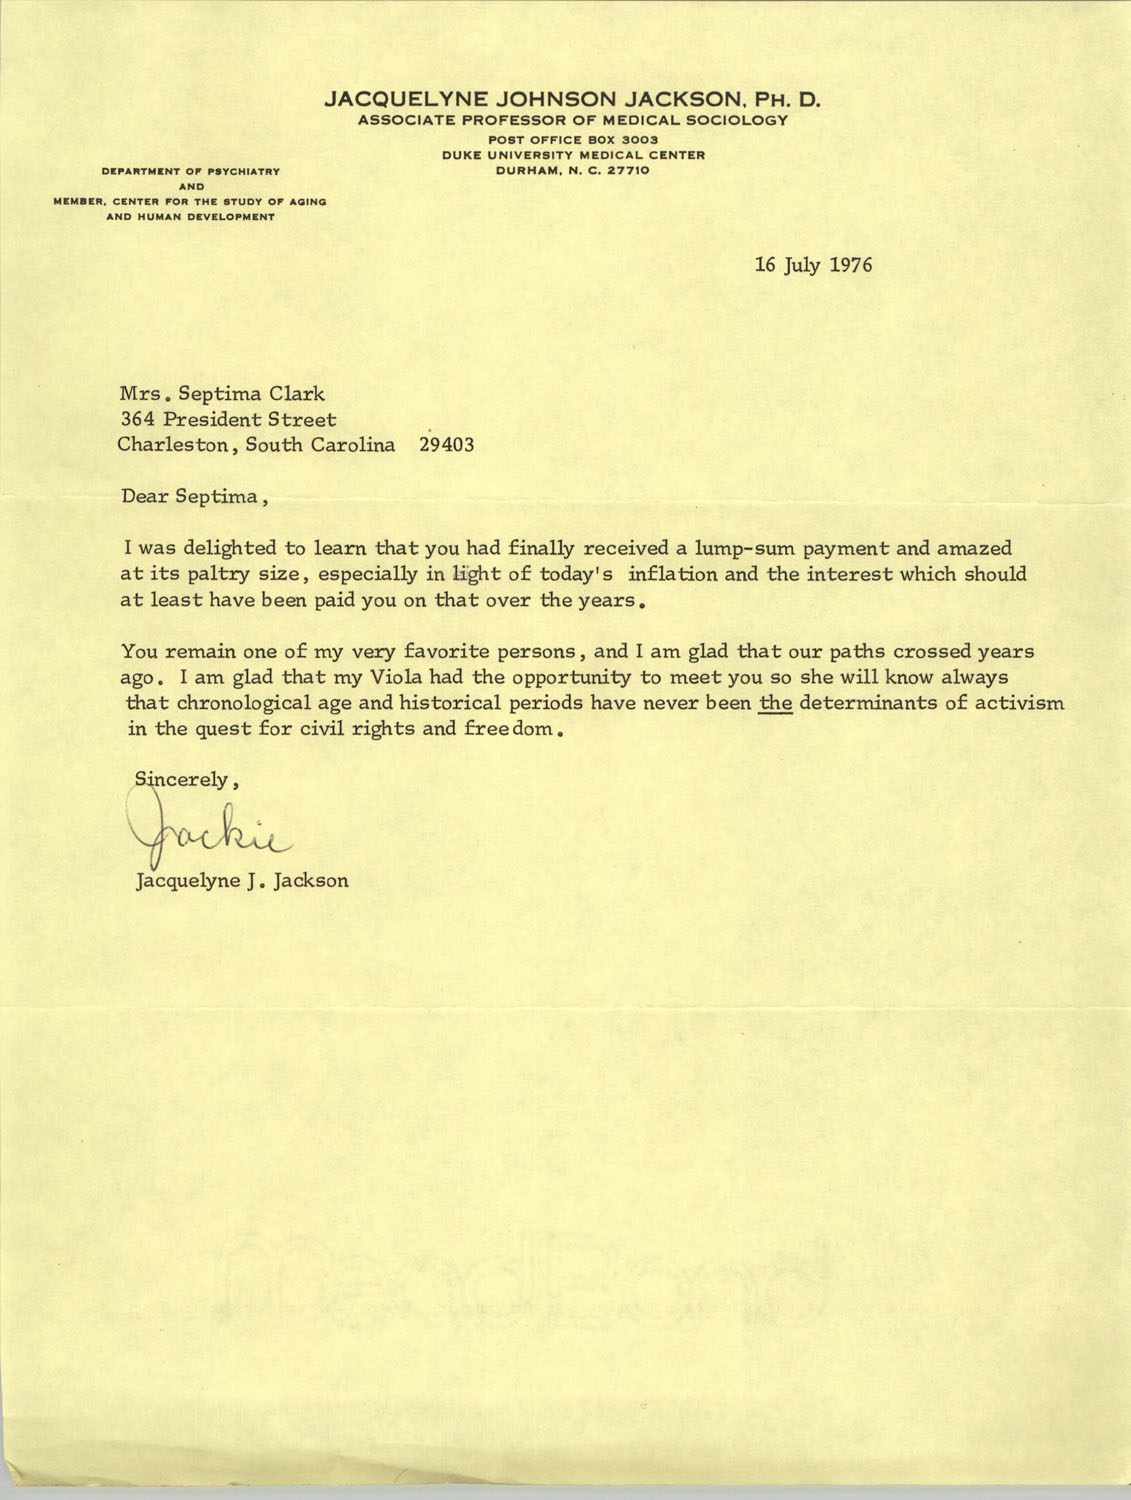 Letter from Jaquelyne J. Jackson to Septima P. Clark, July 16, 1976